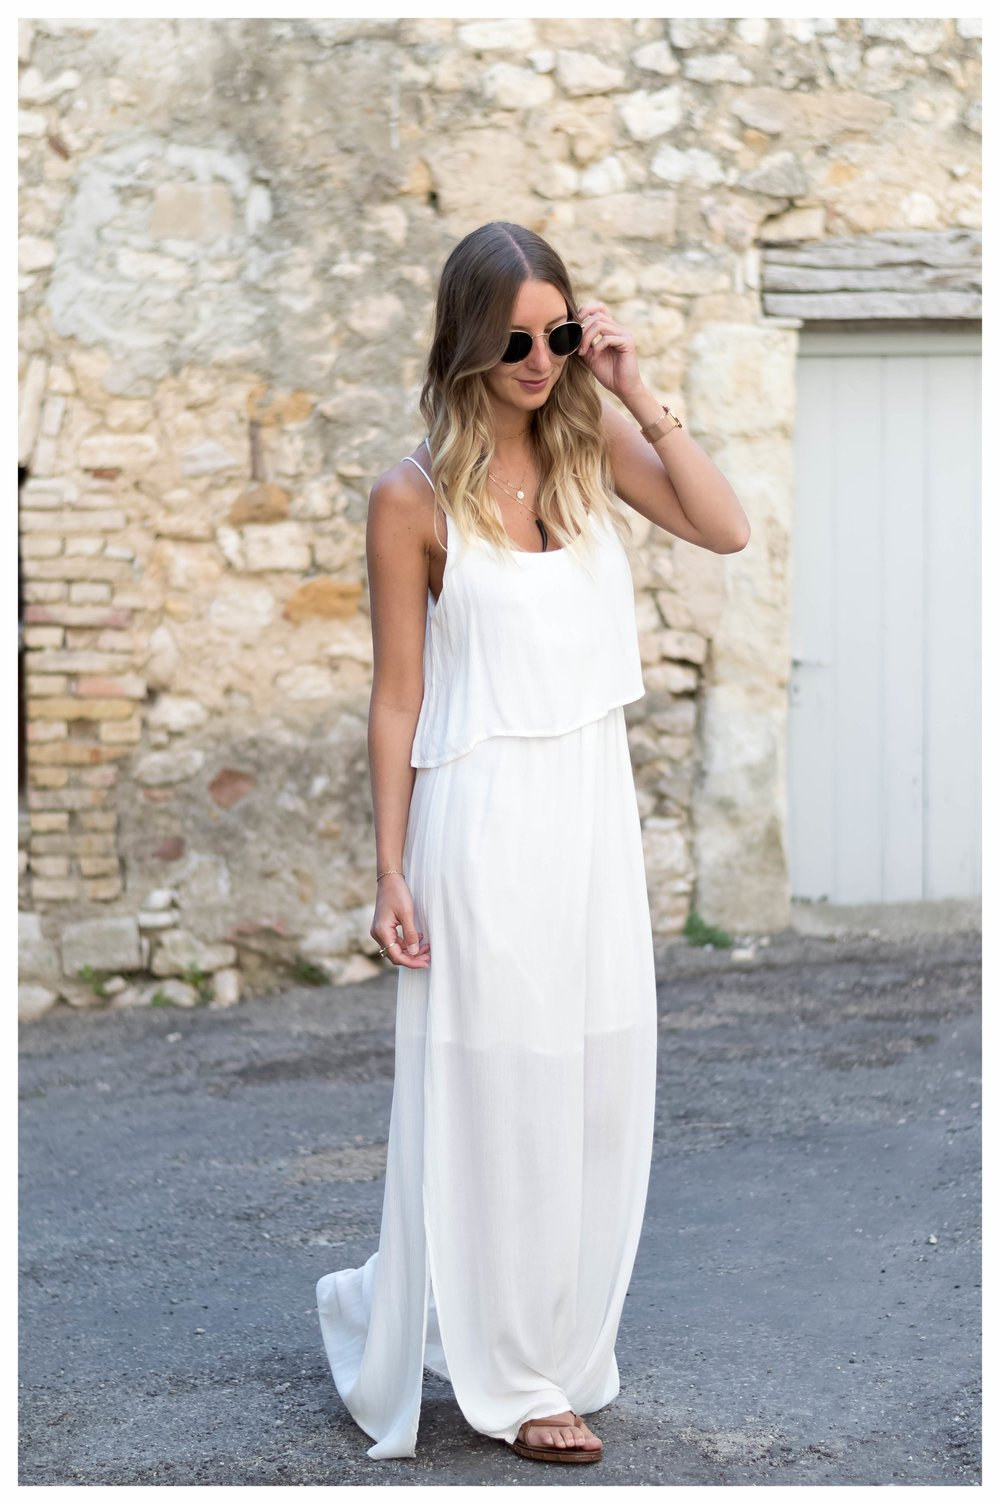 White Dress - OSIARAH.COM (4 sur 16).jpg